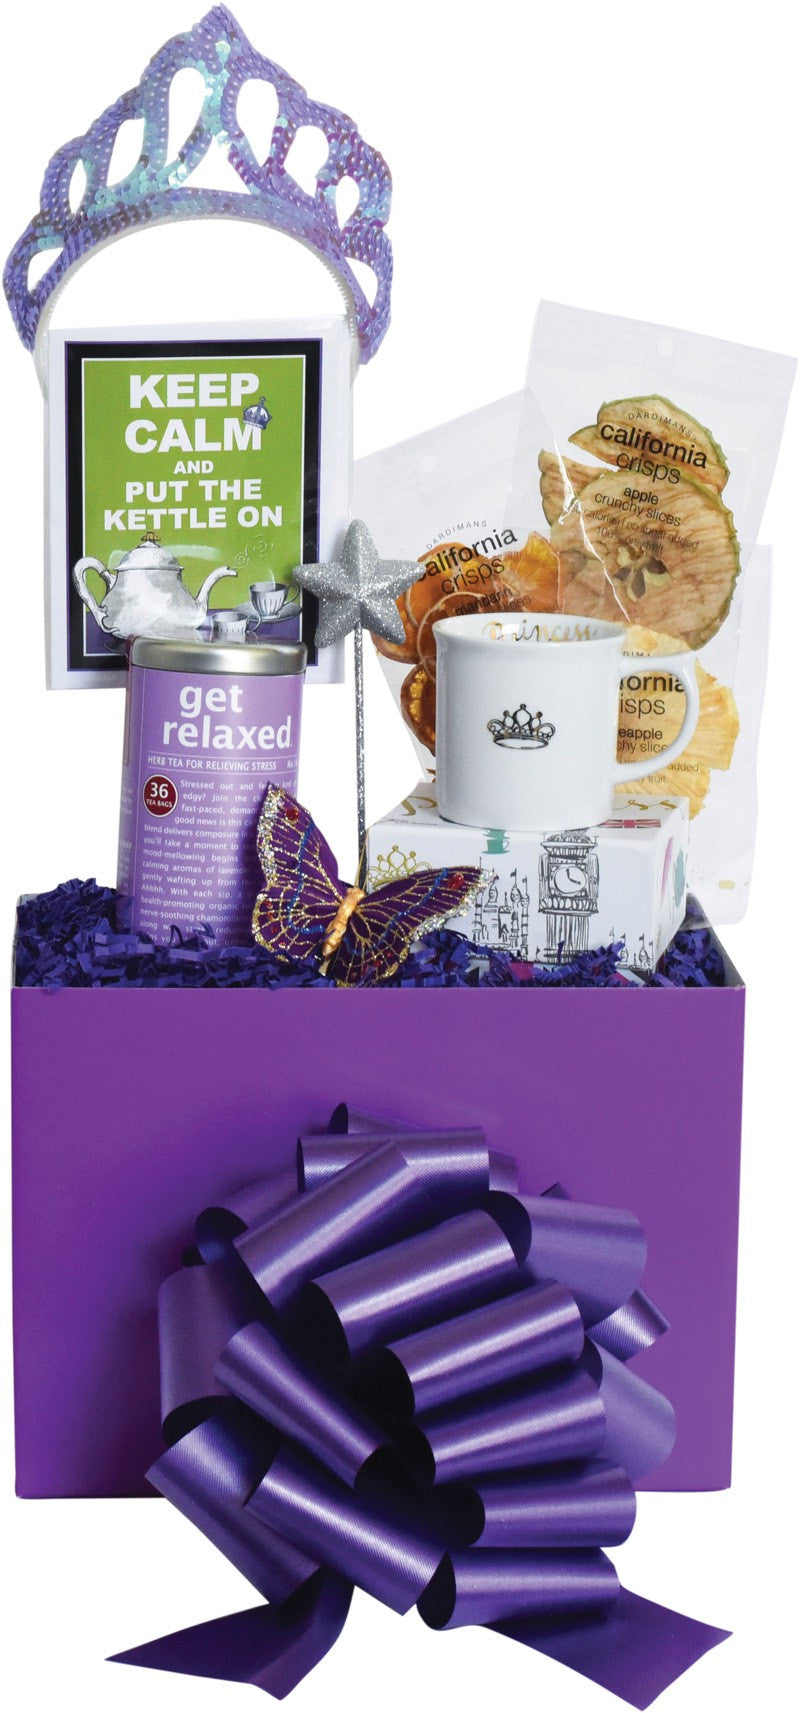 keep-calm-gift-basket-under-60-dollars